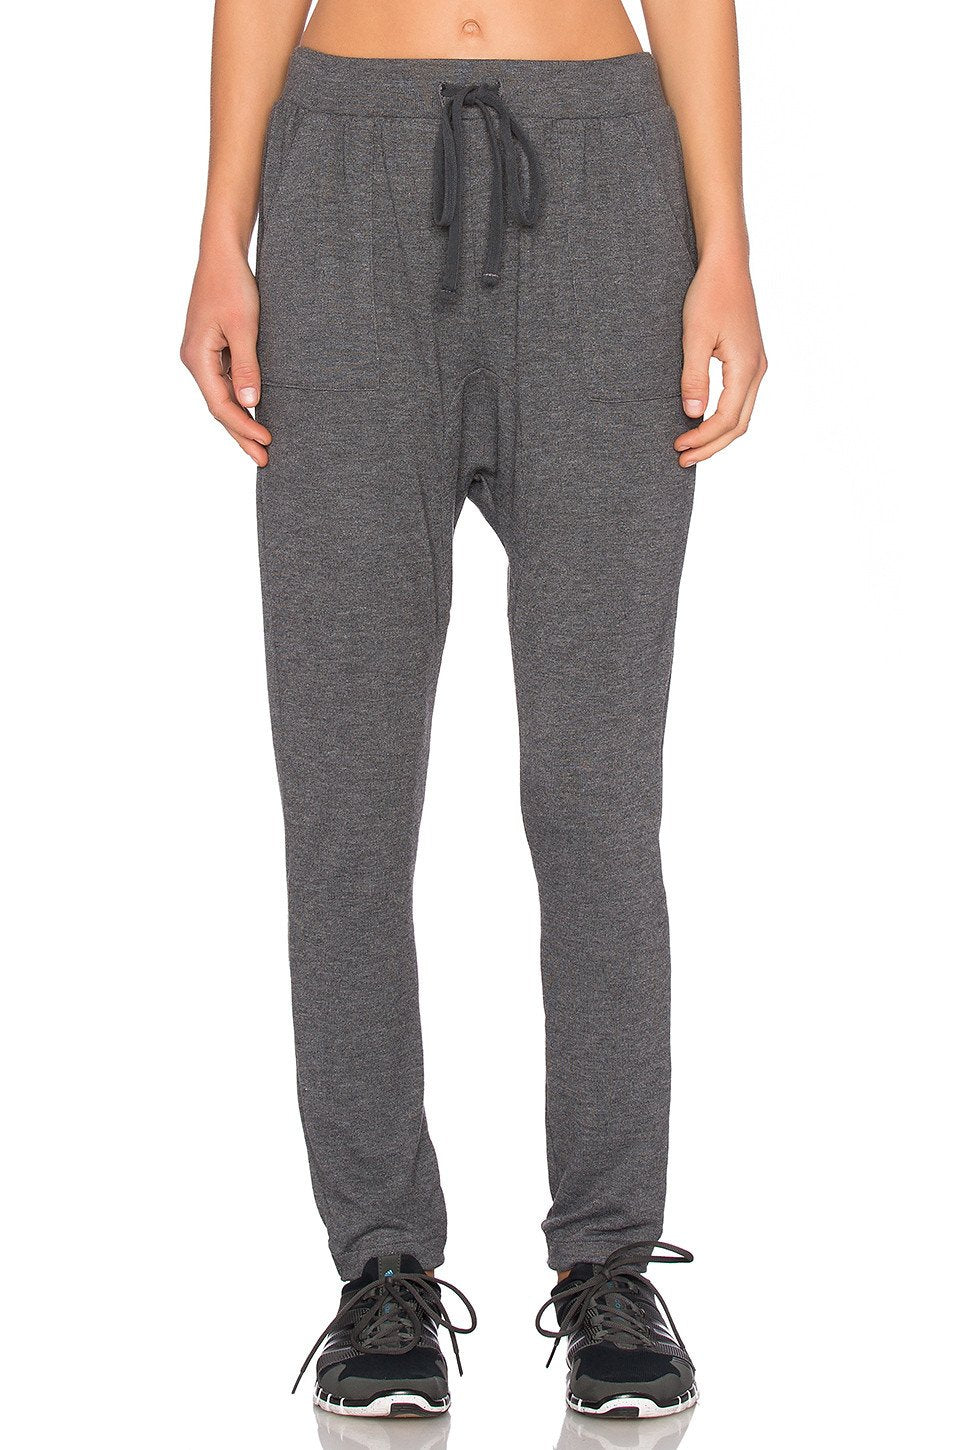 Harlow Sweatpant - Kustom Label - 1